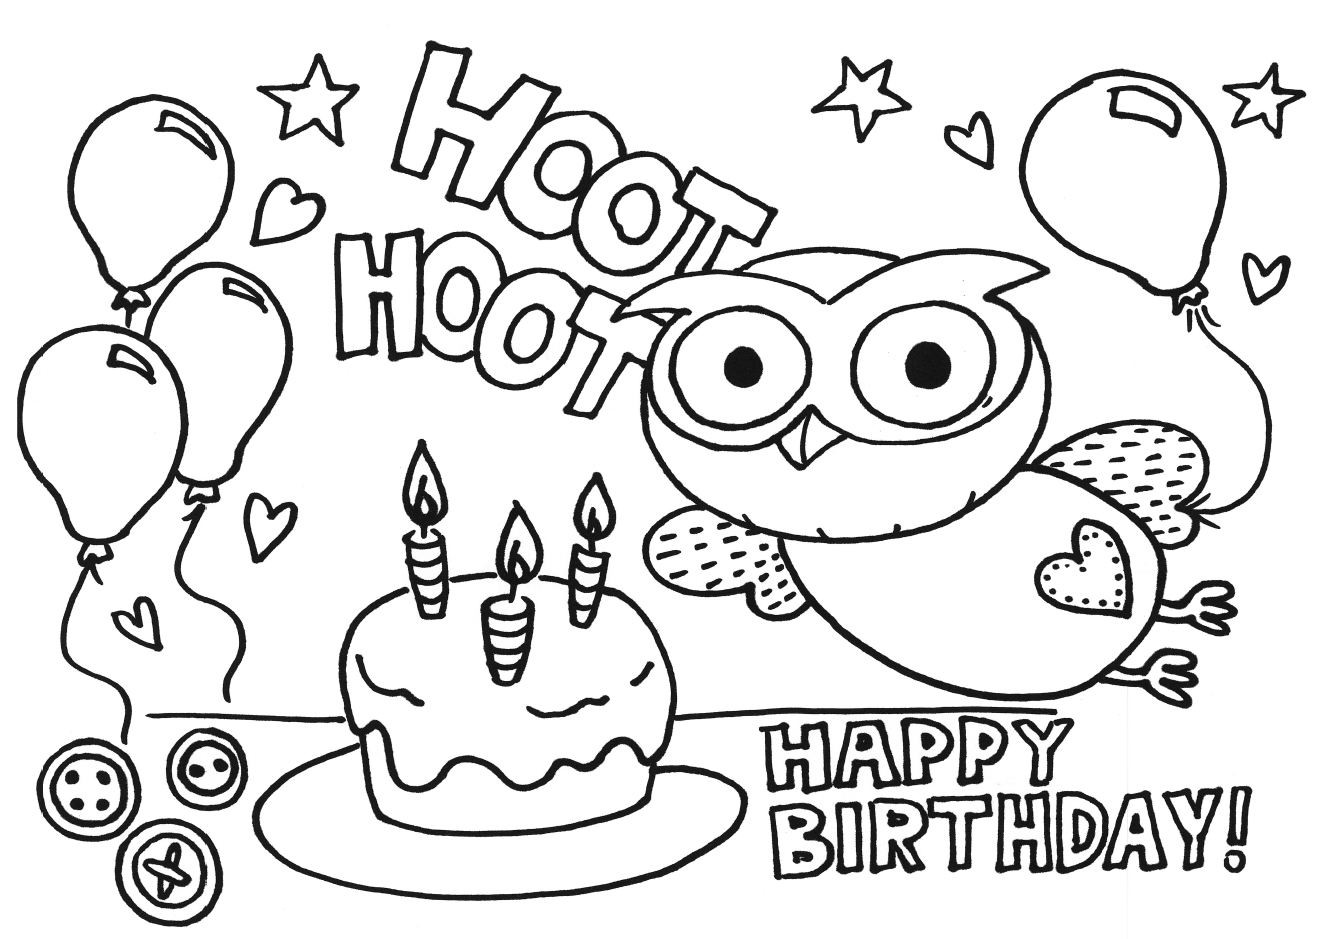 Best ideas about Coloring Pages For Kids Birthday . Save or Pin happy birthday coloring pages for kids Now.